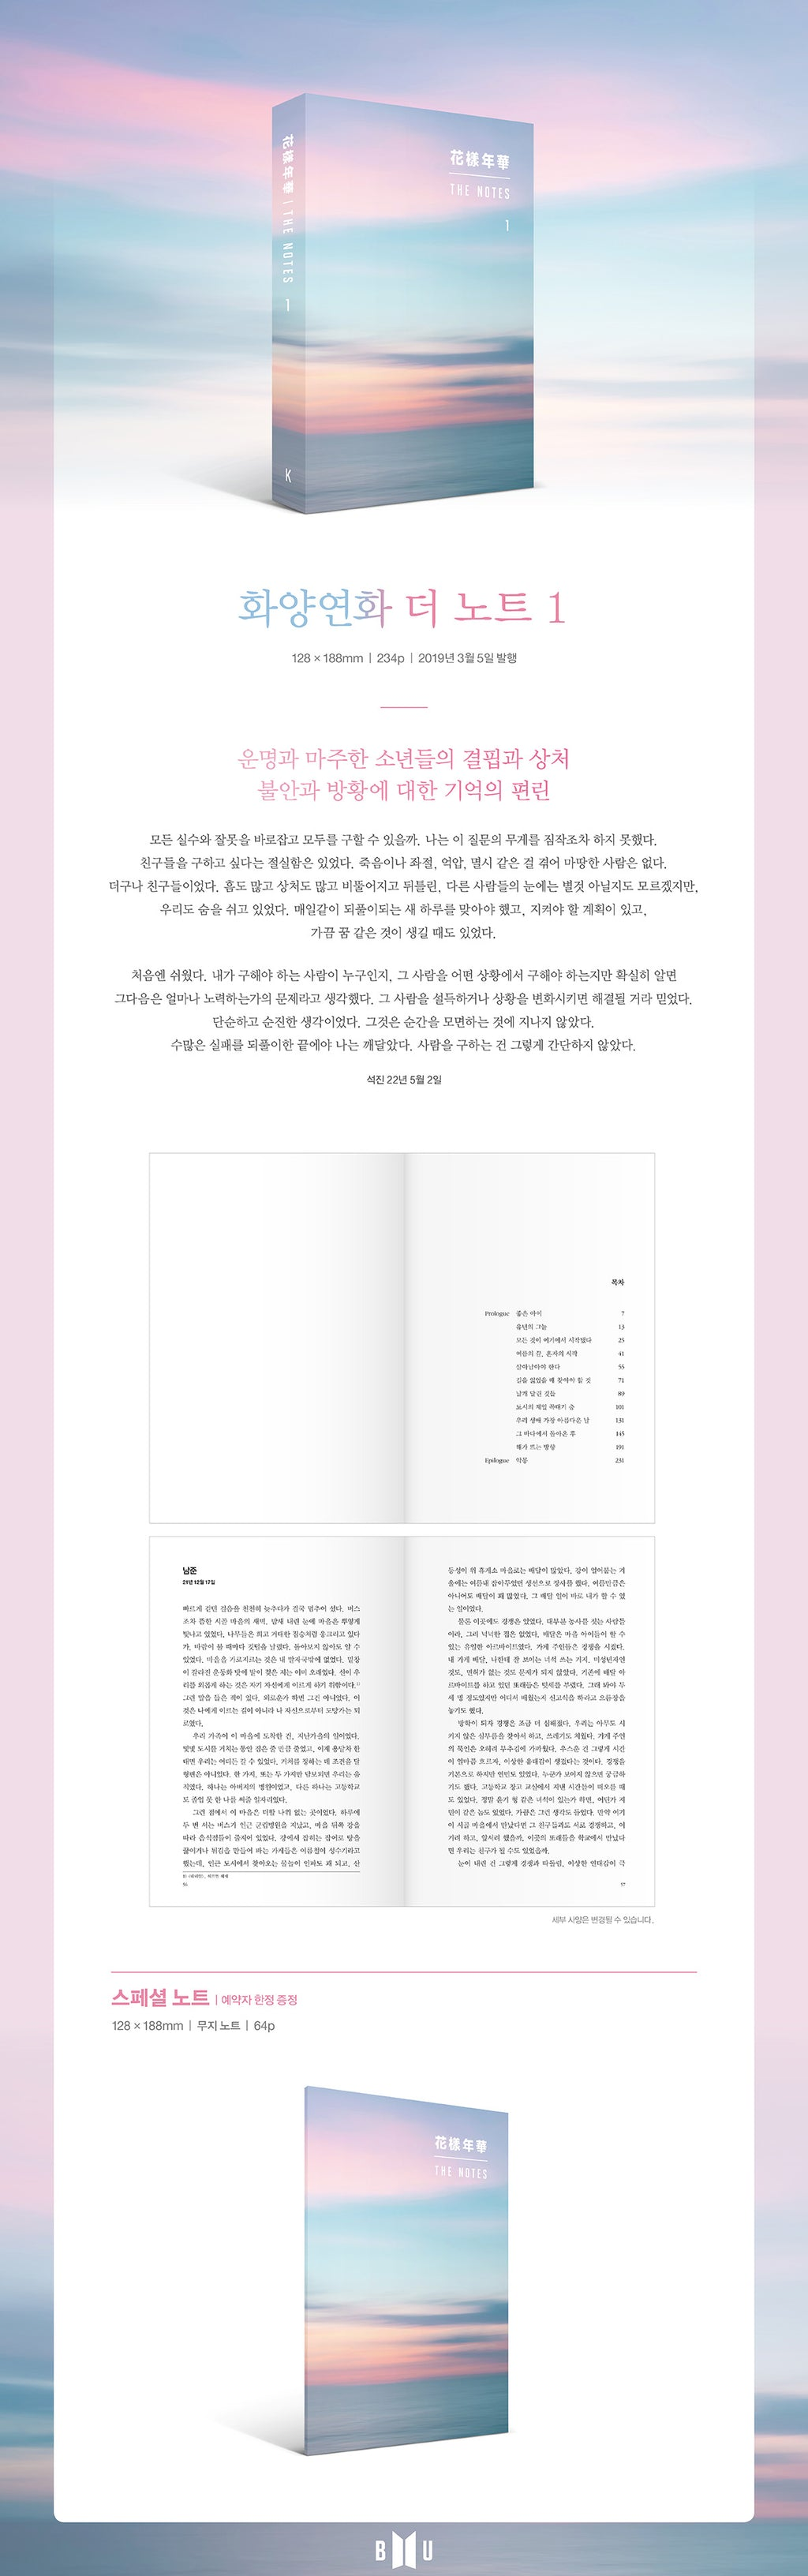 BTS - The Notes (1) - The Most Beautiful Moment in Life (Korean Version) - J-Store Online